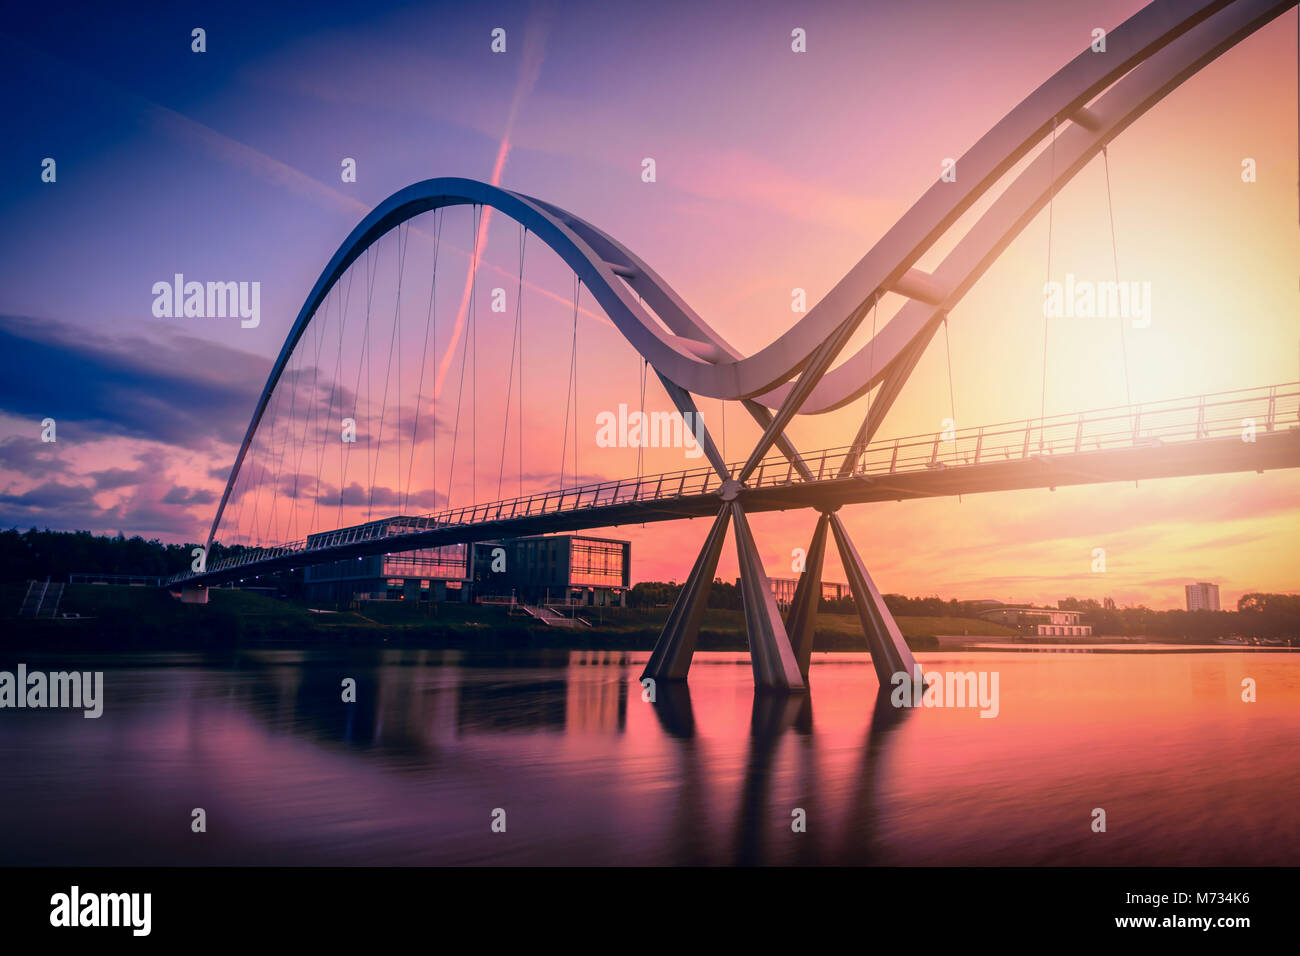 Infinity Bridge on dramatic sky at sunset in Stockton-on-Tees, UK. Stock Photo